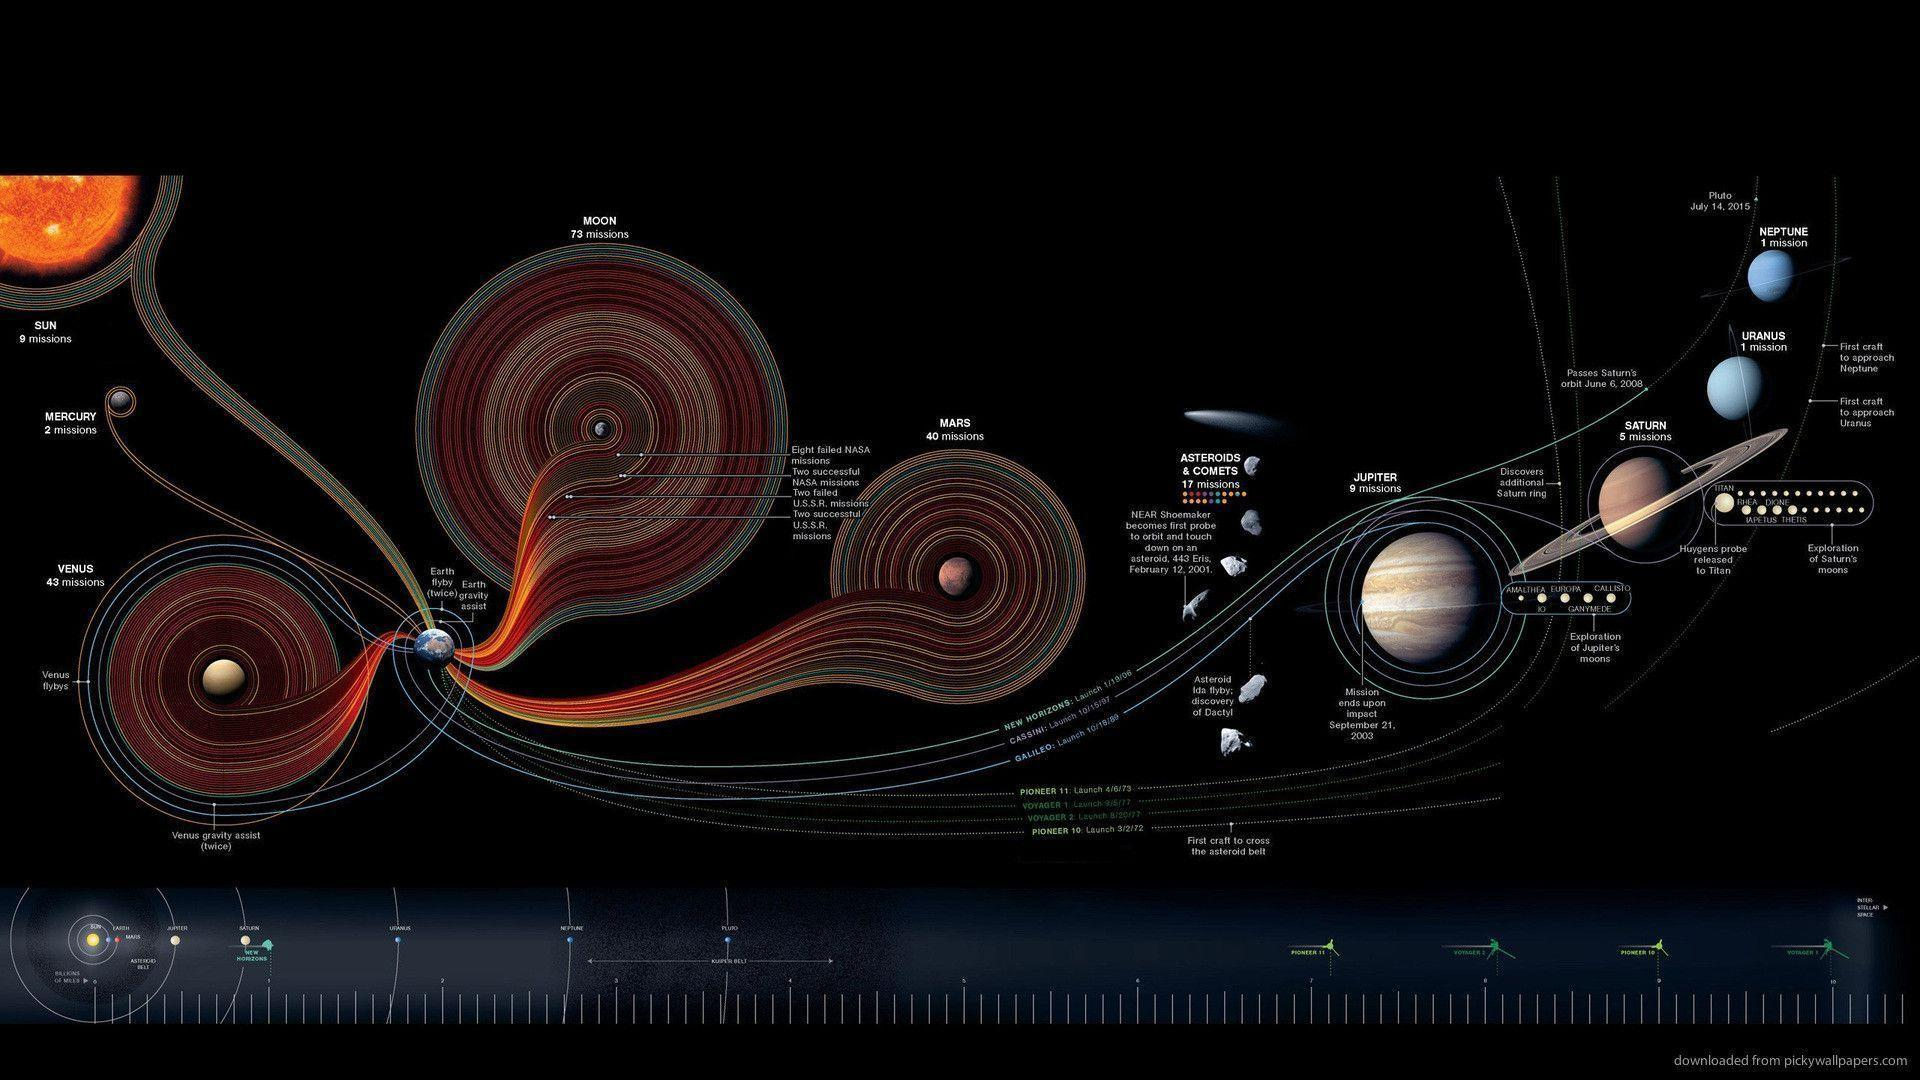 planets solar system wallpaper 1920x1200 - photo #35